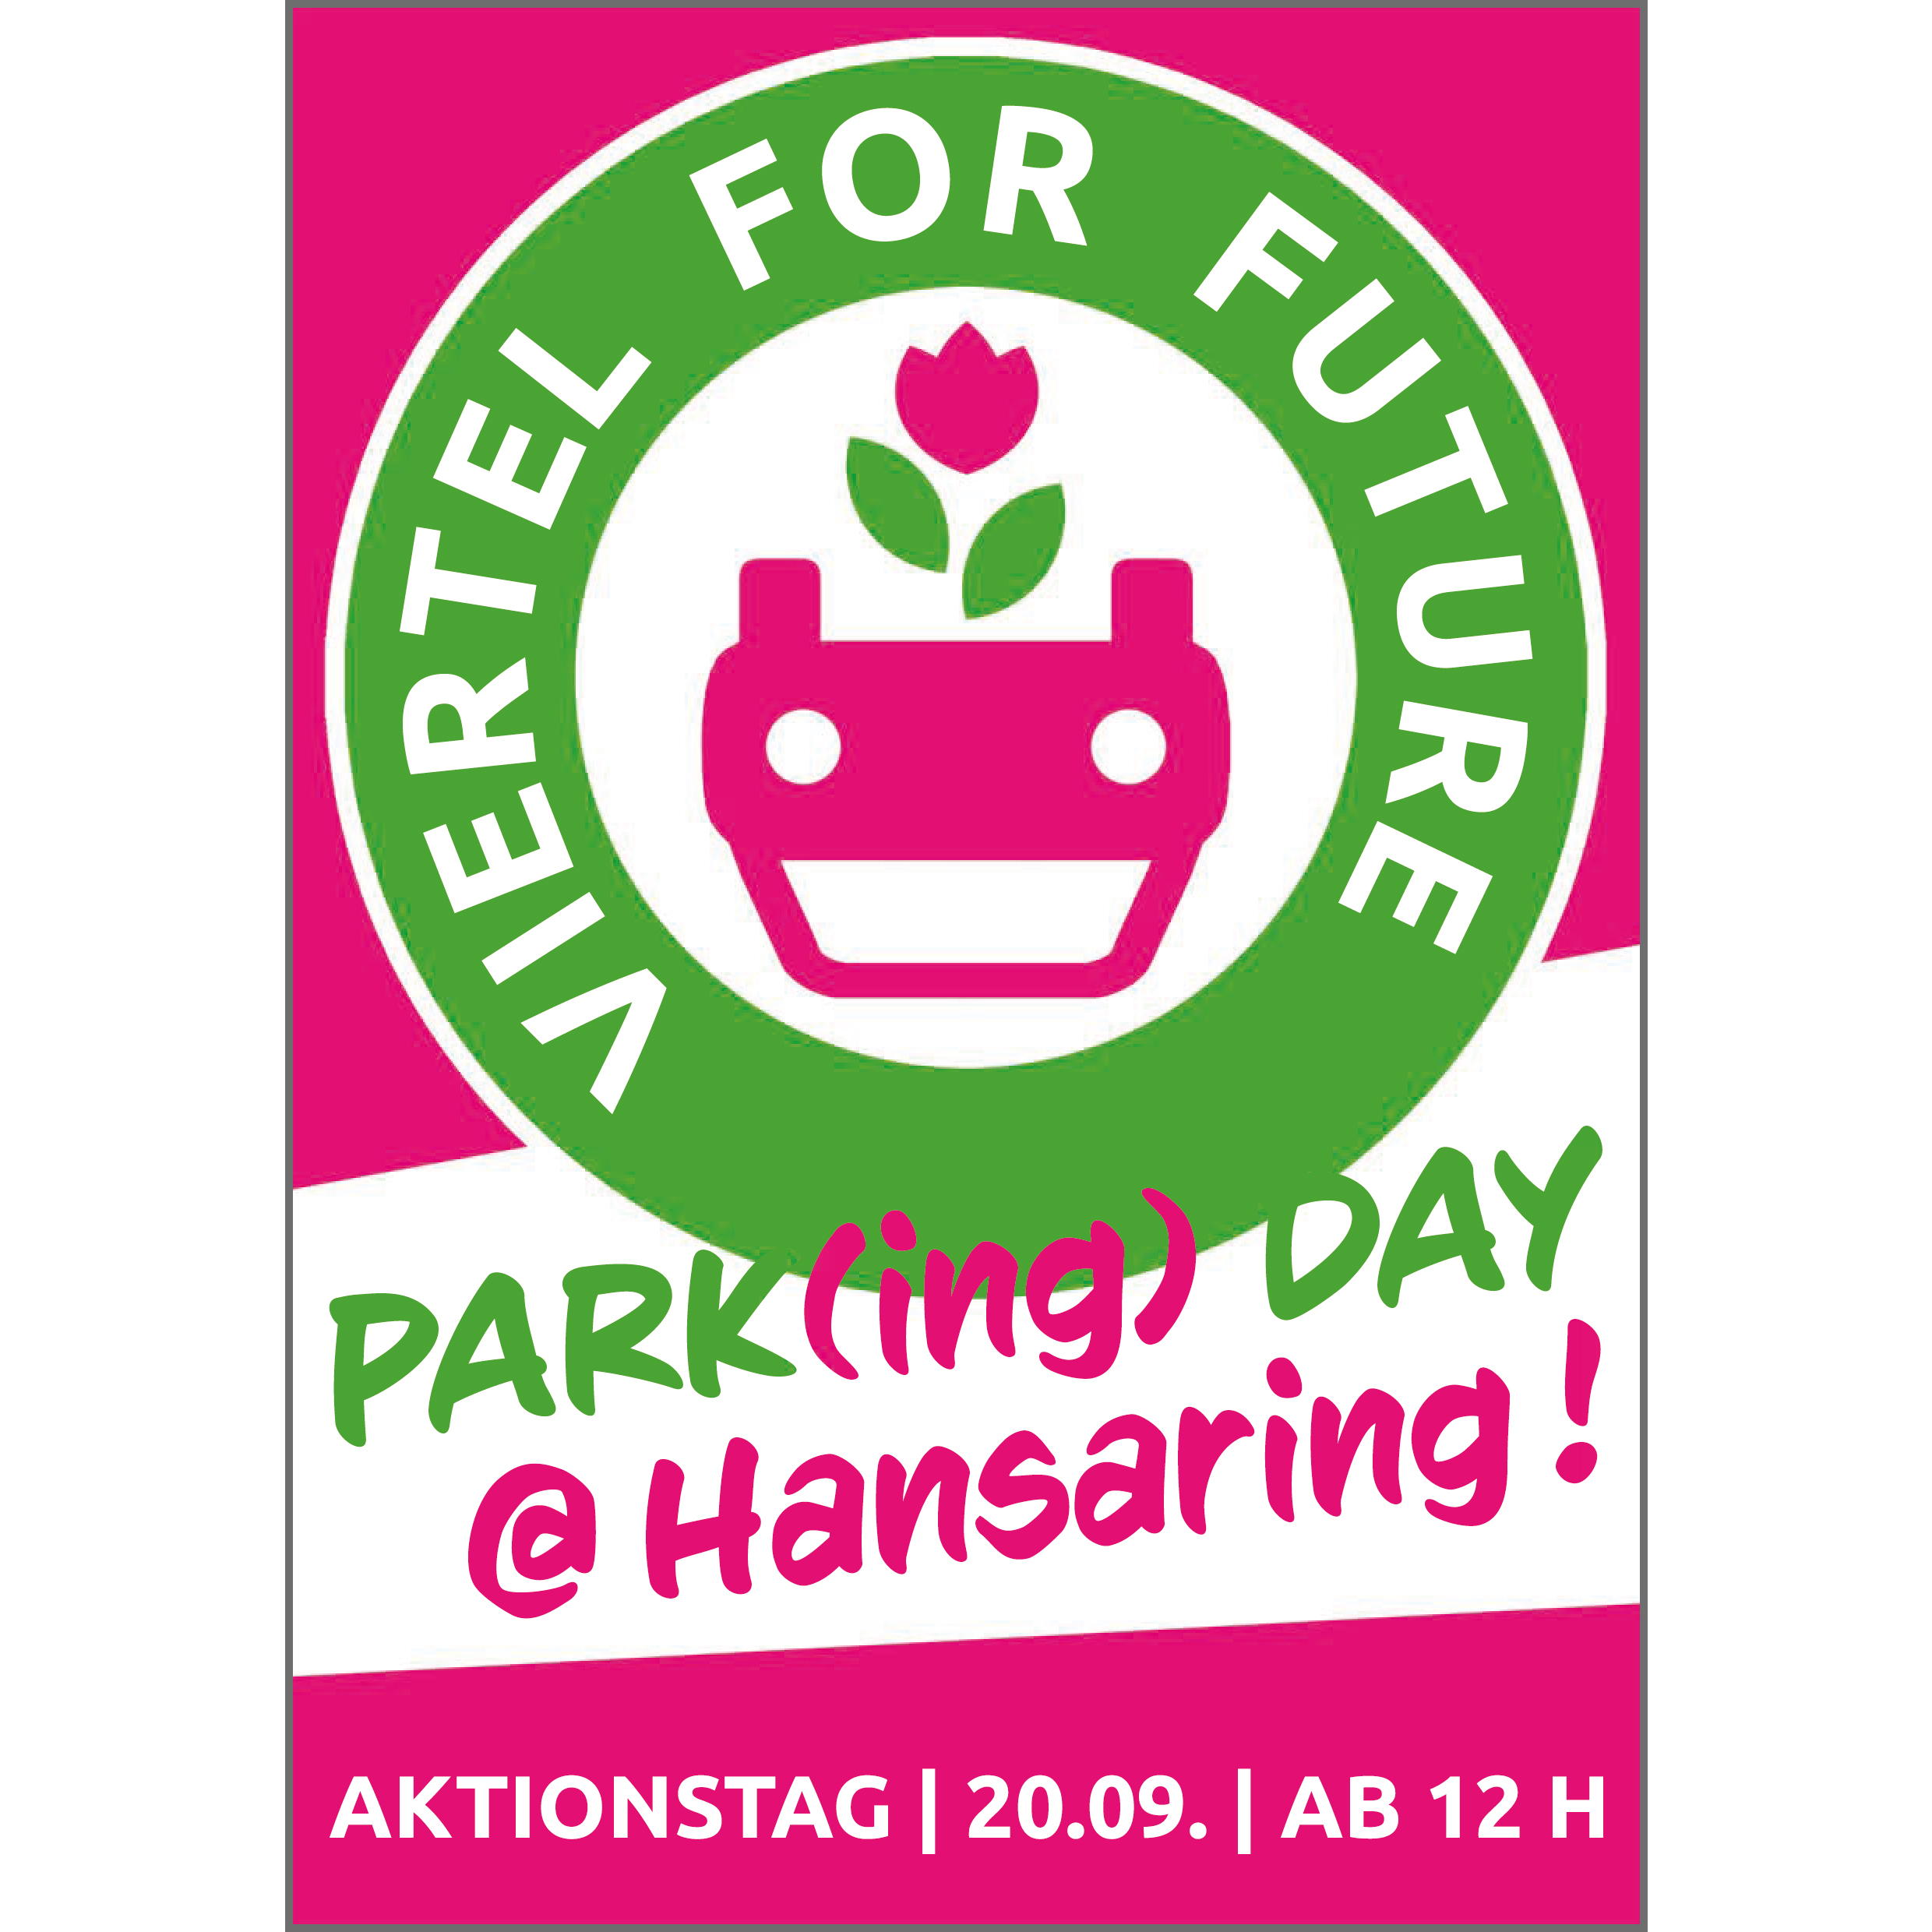 Parking Day am Hansaring